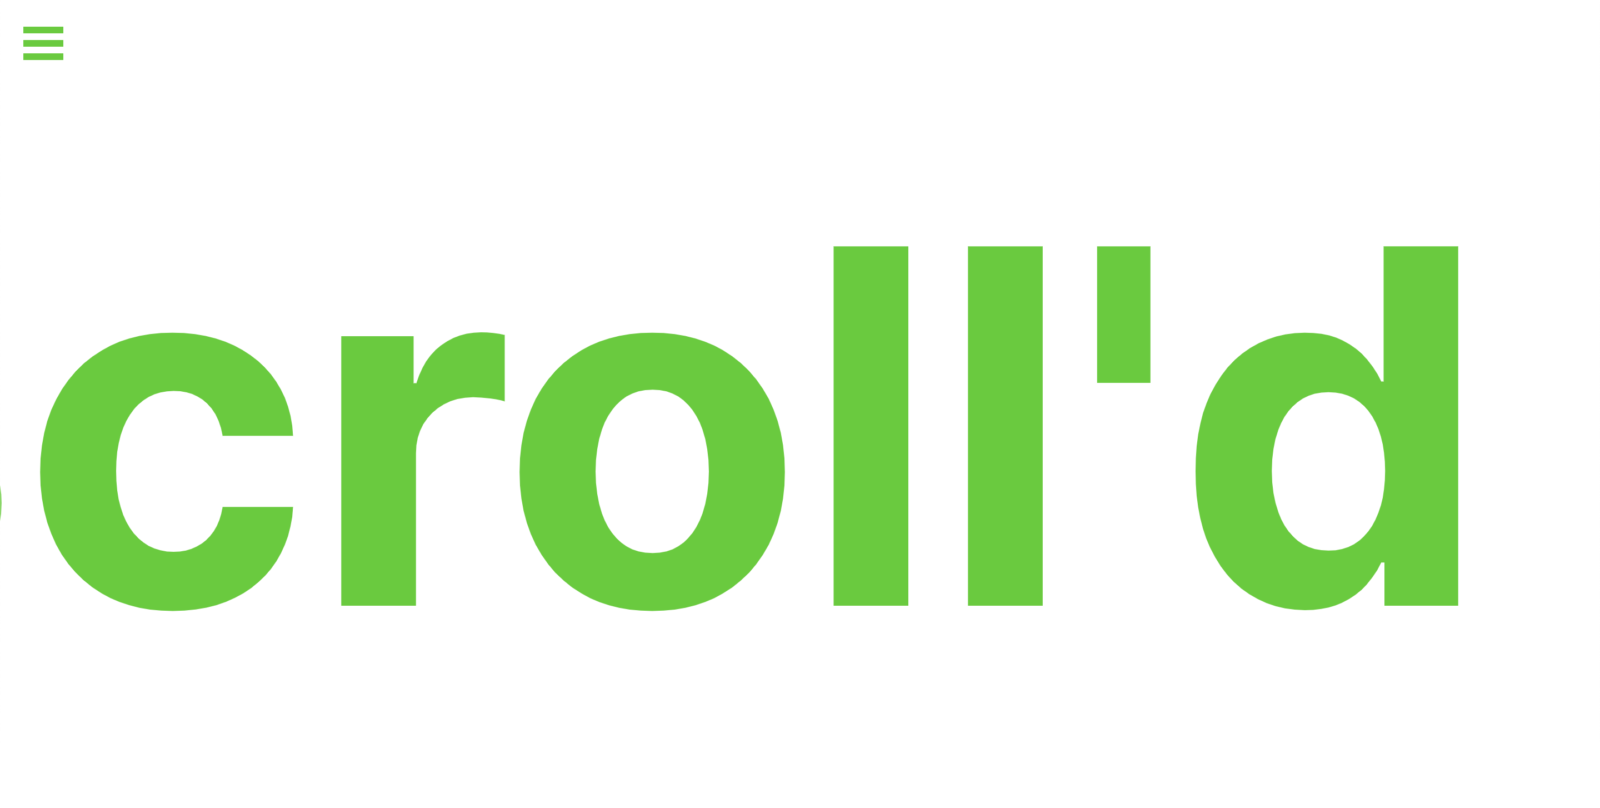 scrollr marquee color on white